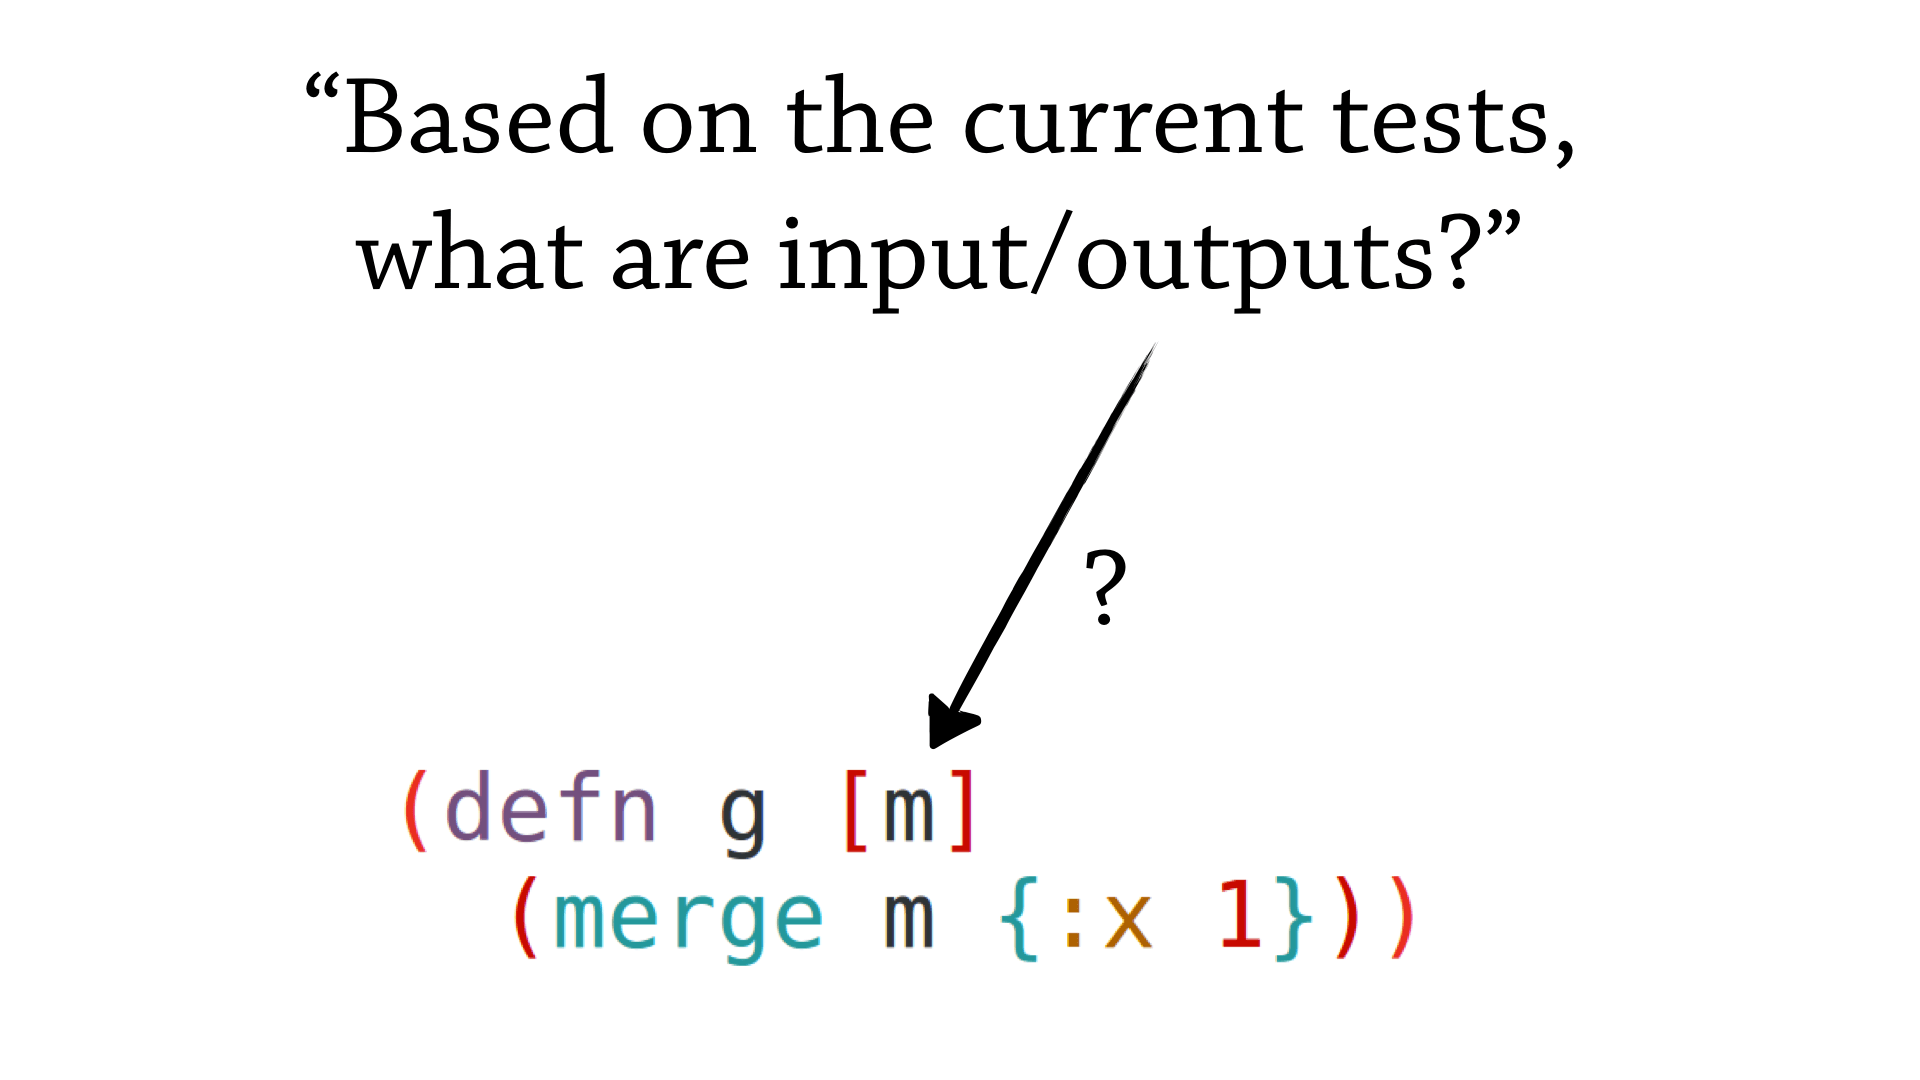 Based on the current tests, what are the inputs/outputs of a function?